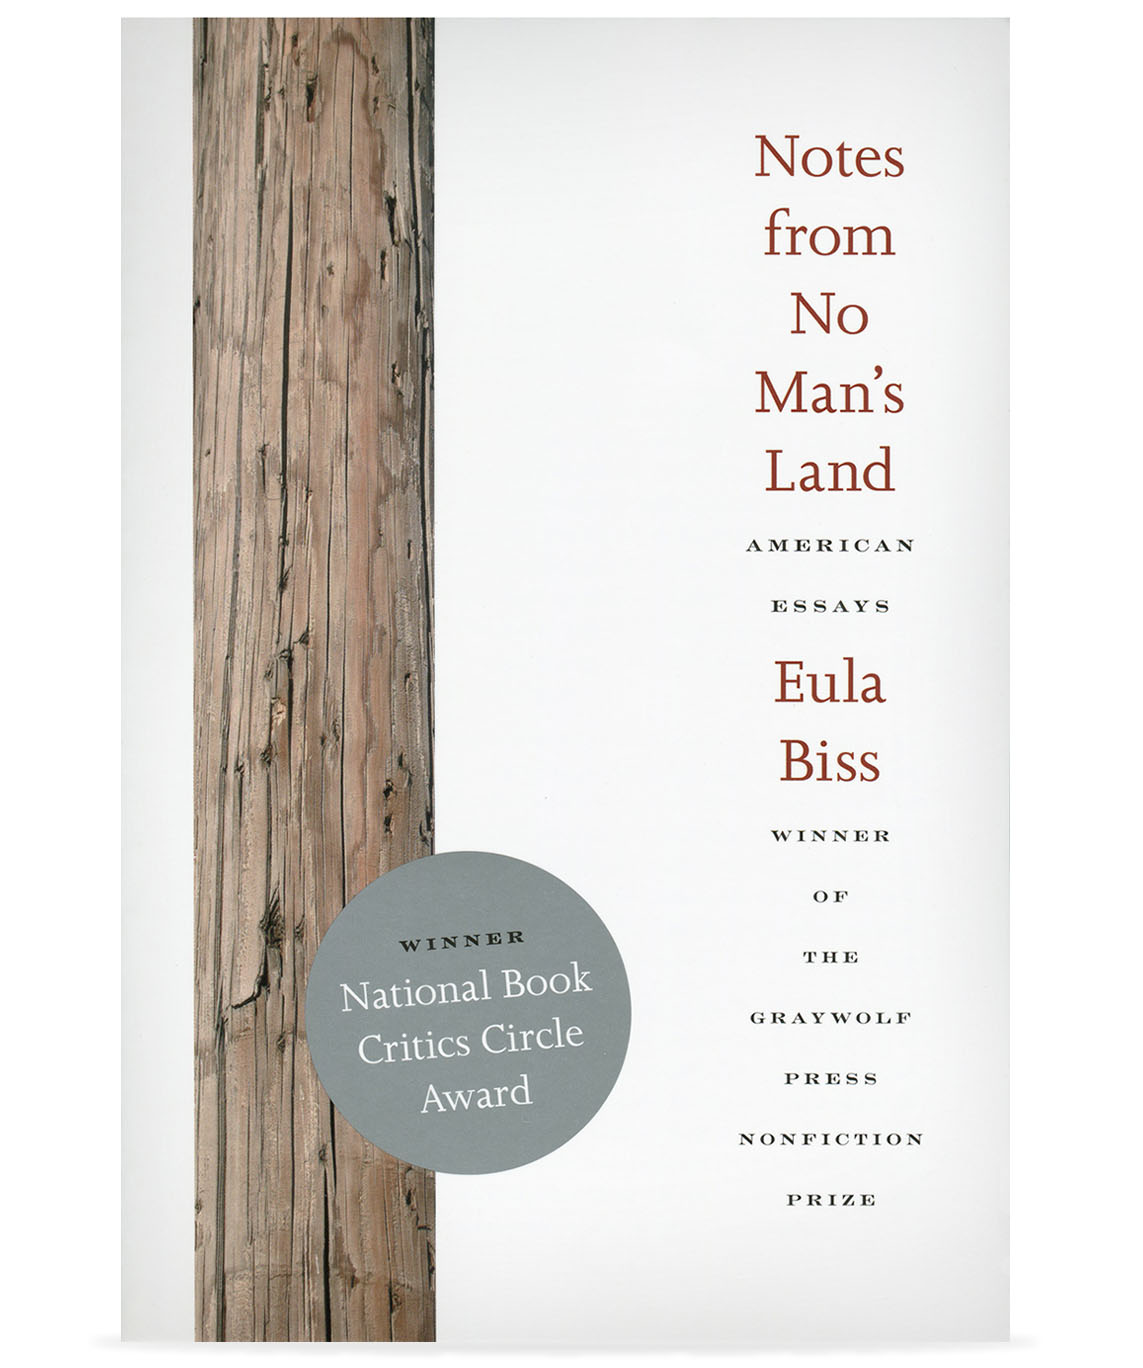 eula biss author website notes from no man s land american essays